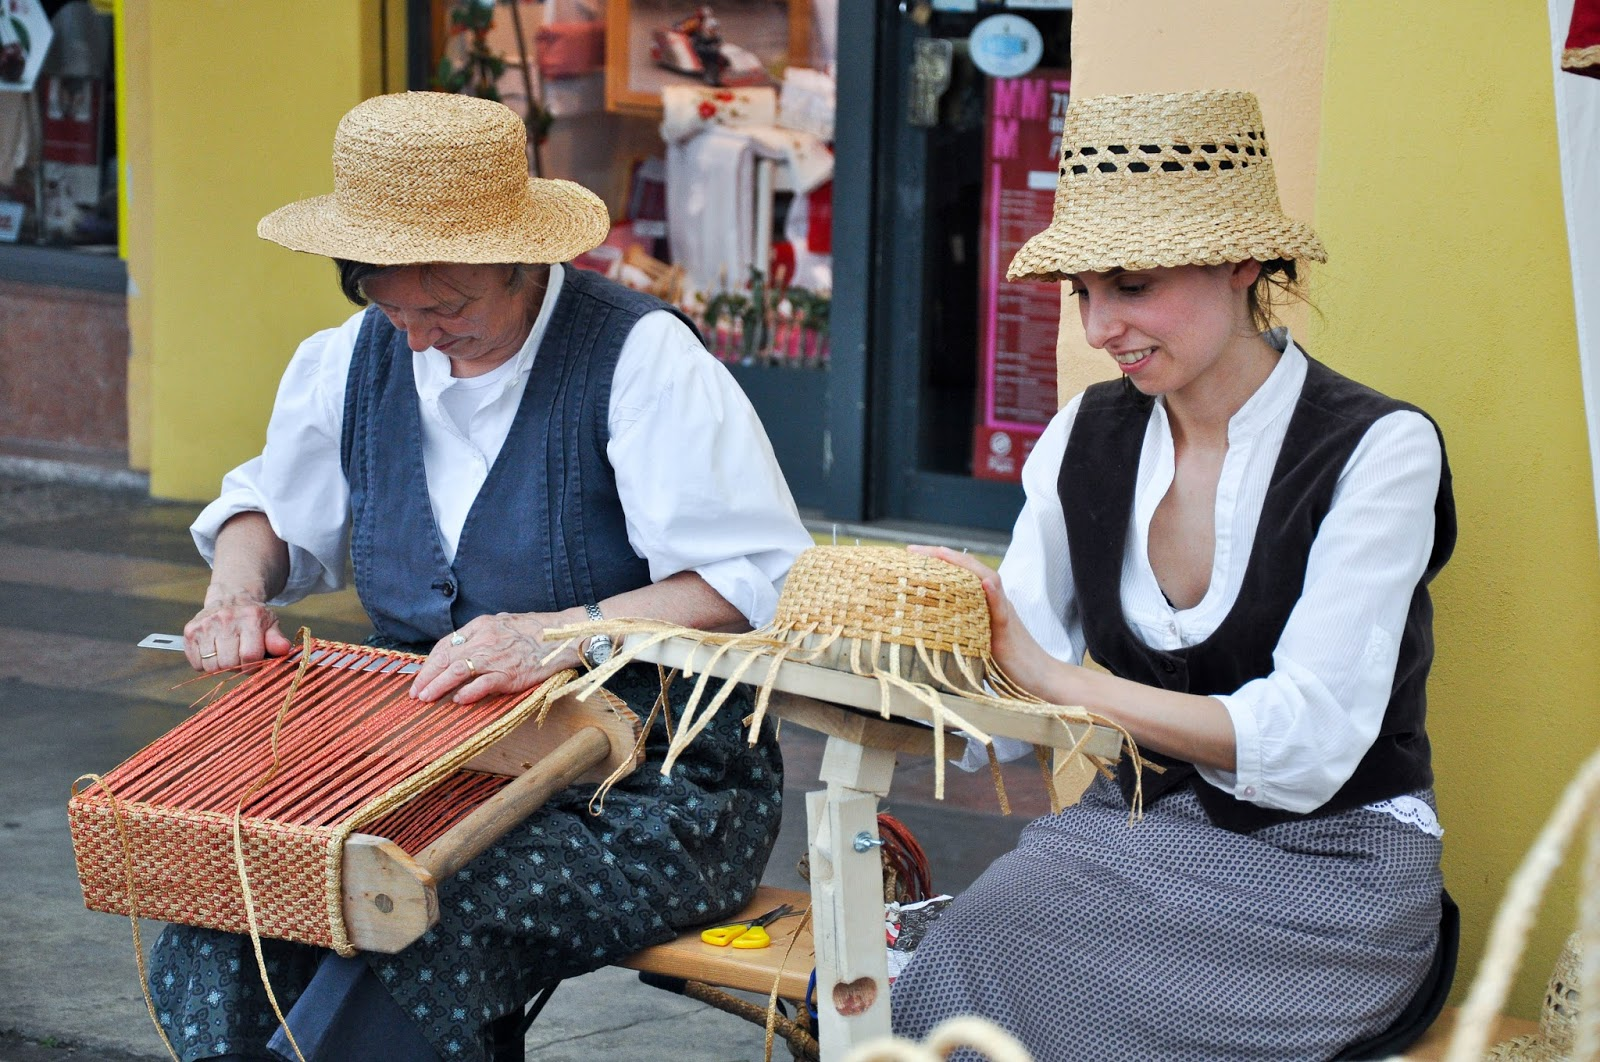 Two ladies weave a bag and a hat, Cherry Show Market, Marostica, Veneto, Italy